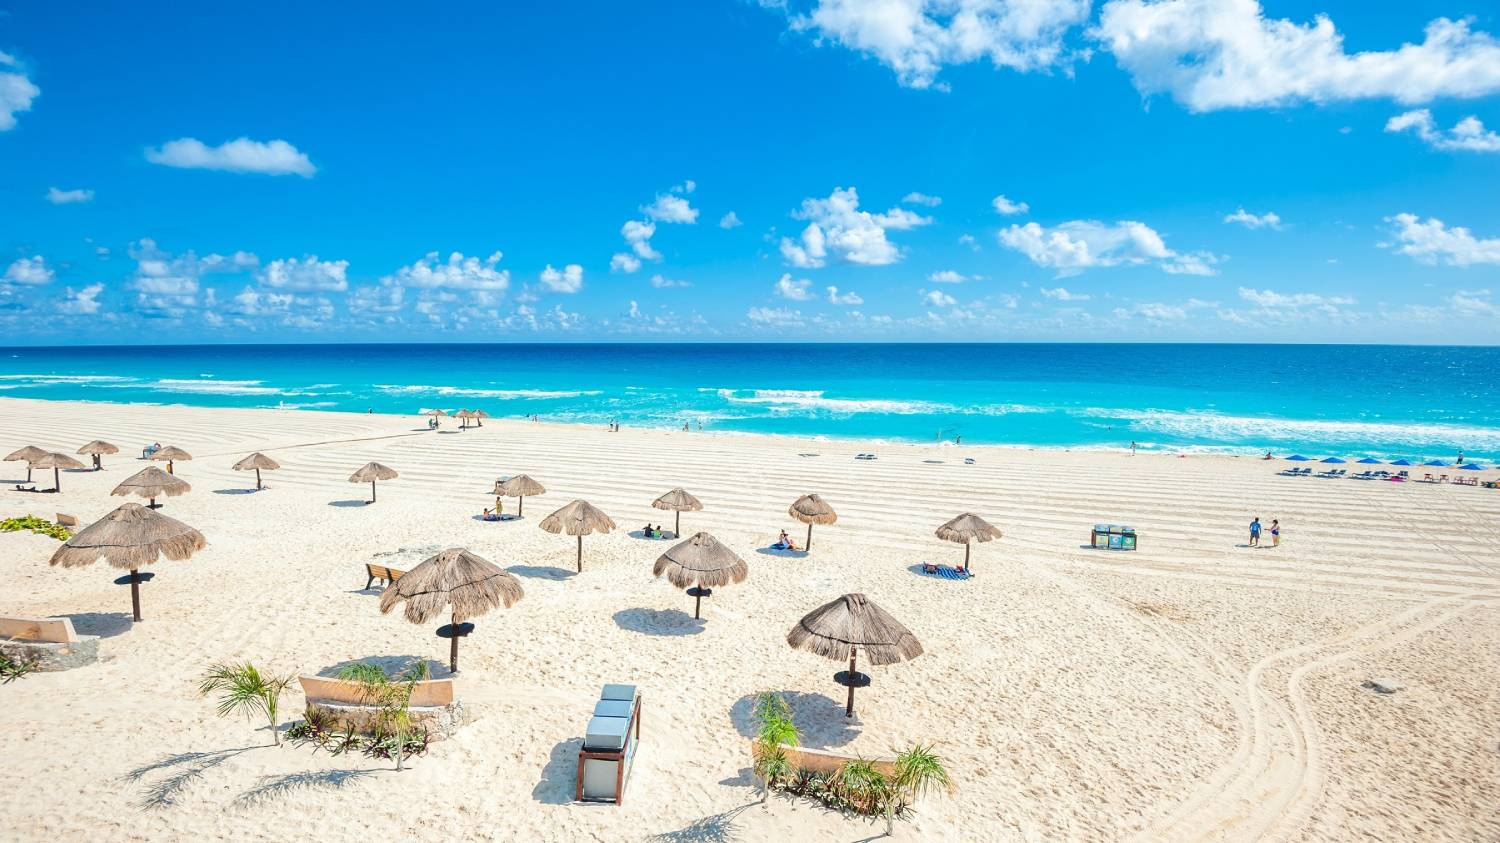 Cancun - Things To Do In Cozumel